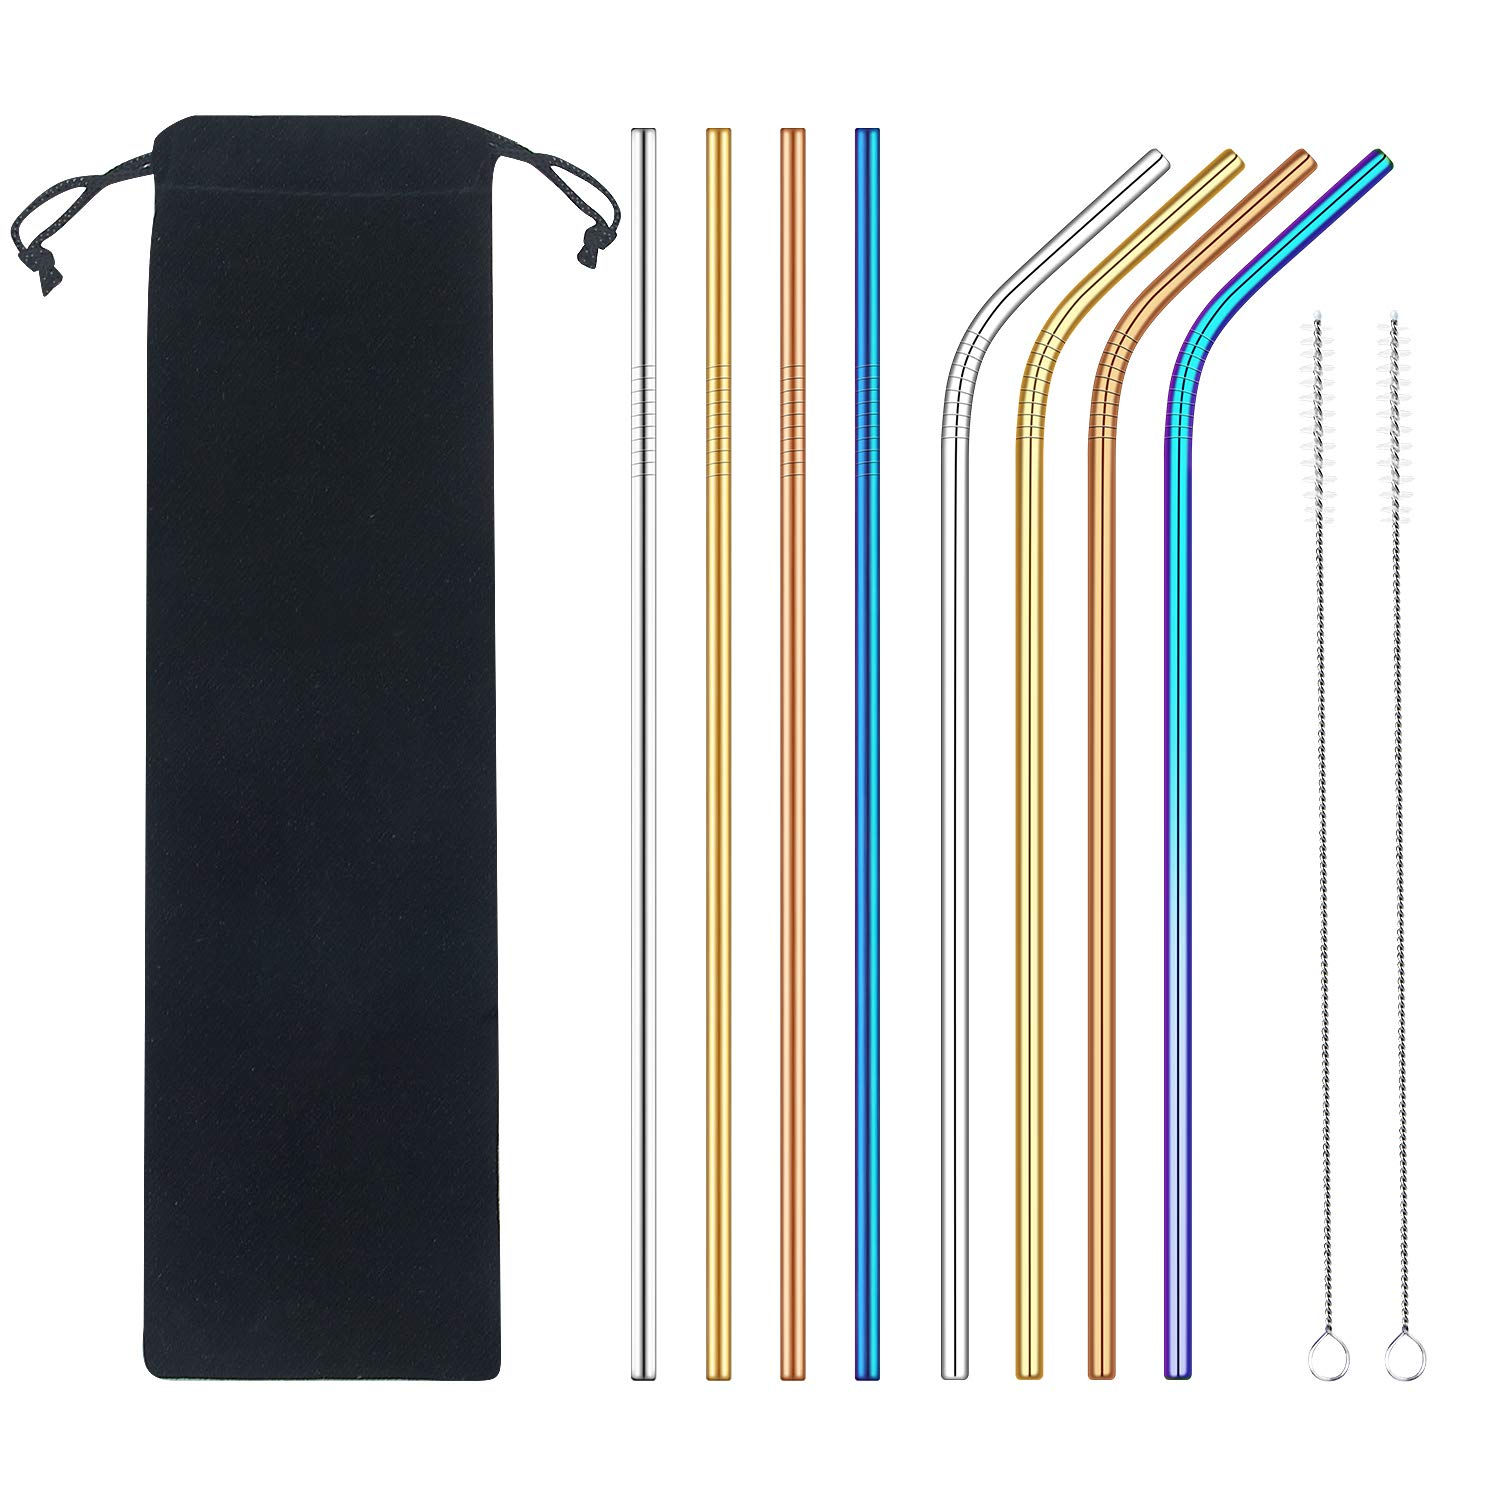 Stainless Steel Straws, Extra Long 10.5'' Metal Drinking Straws with 2 Brushes and Carry Bag (10 Pcs), FDA-Approved Environment-Friendly Straws for 20/30oz Tumblers Cold Beverage(Multicolor)